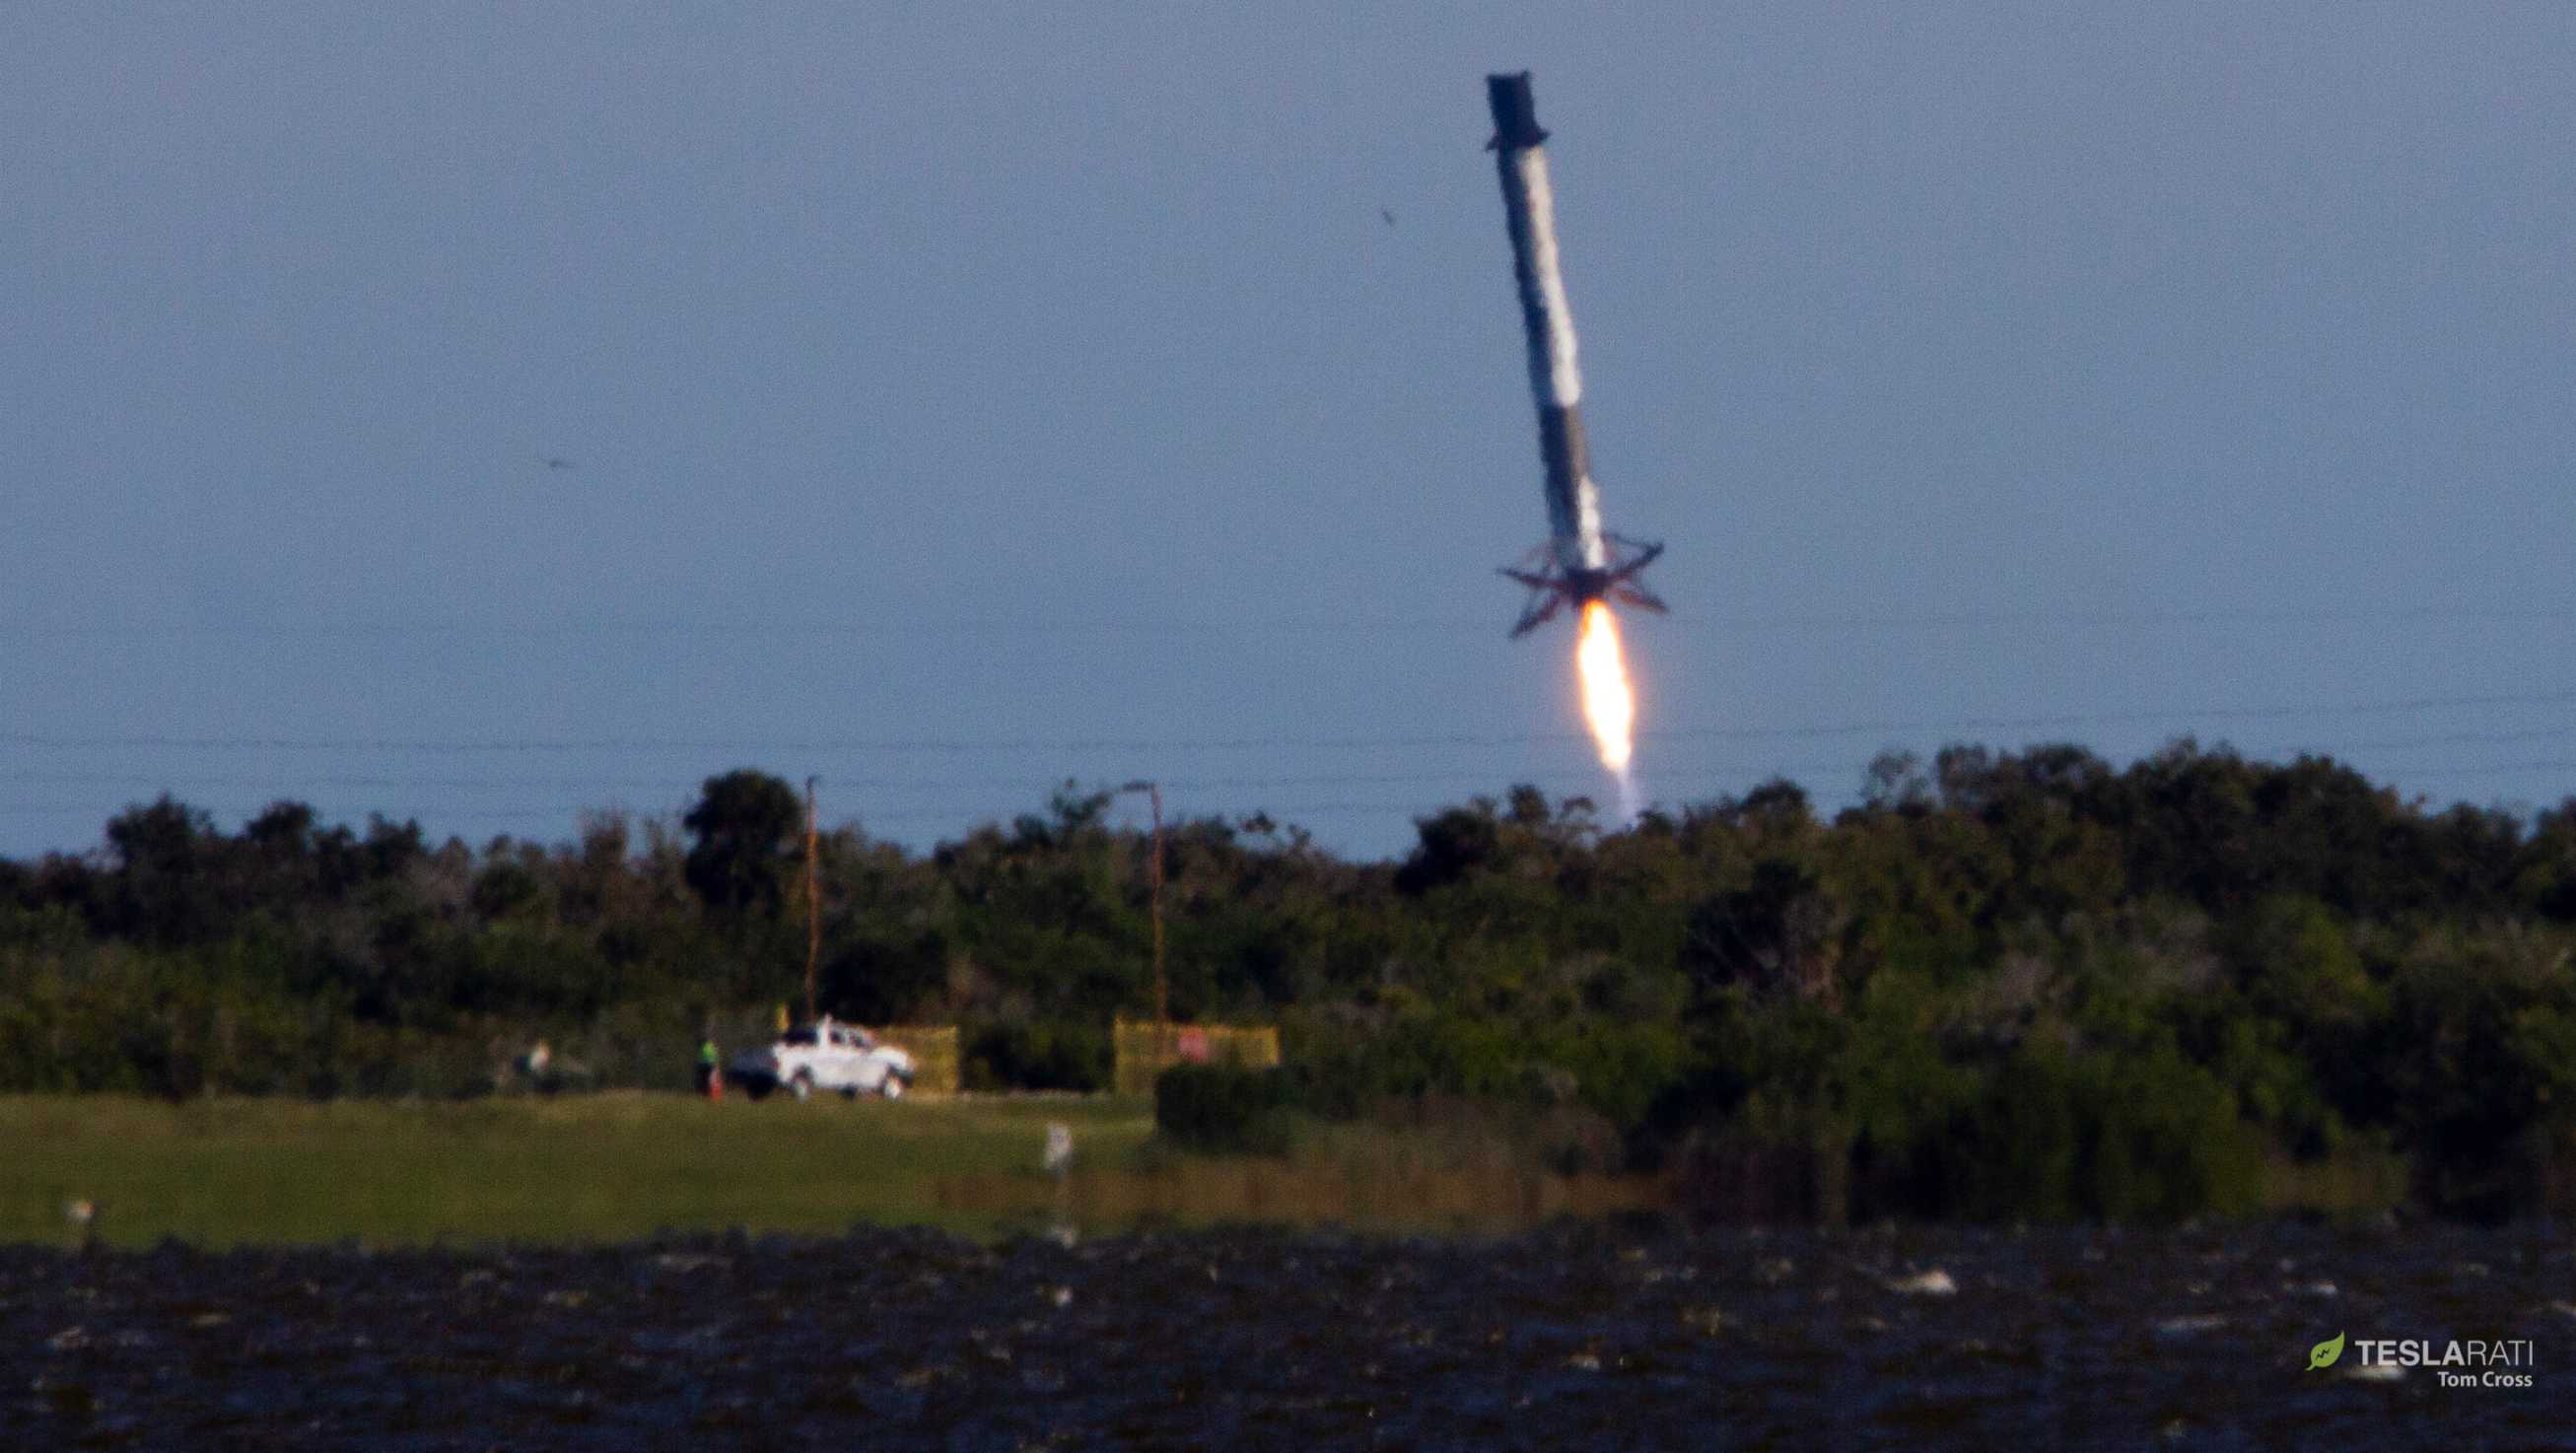 SpaceX rocket hoists cargo to space station ahead of unexpected splashdown